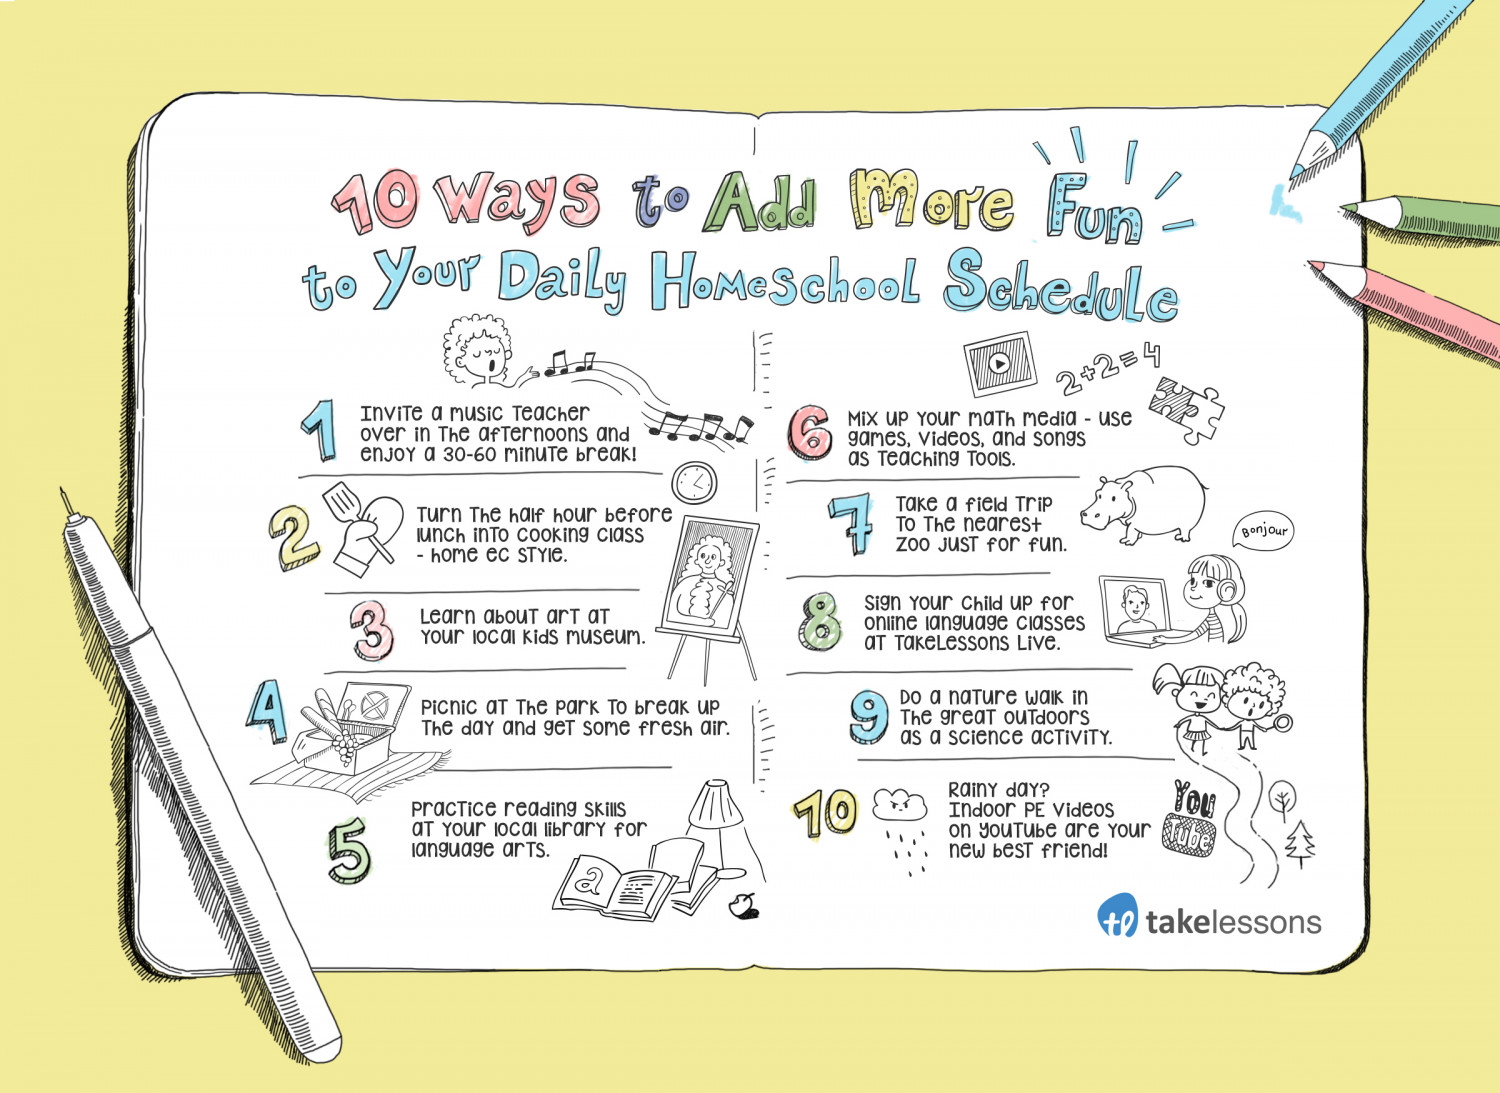 10 Ways to Add More Fun to Your Daily  Homeschool Schedule Infographic